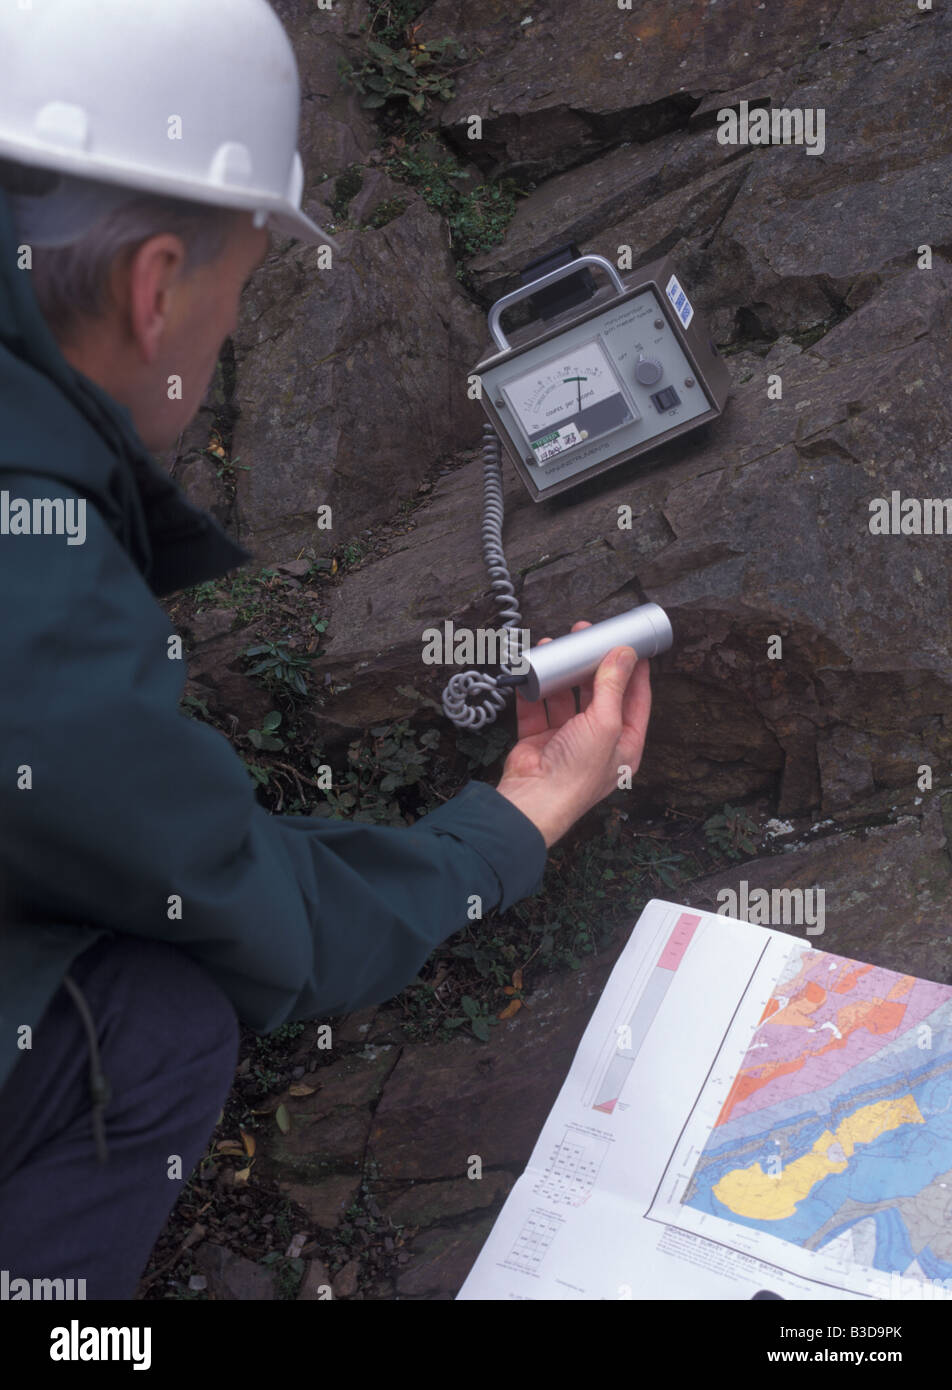 A geologist uses a geiger counter while examining rocks Stock Photo